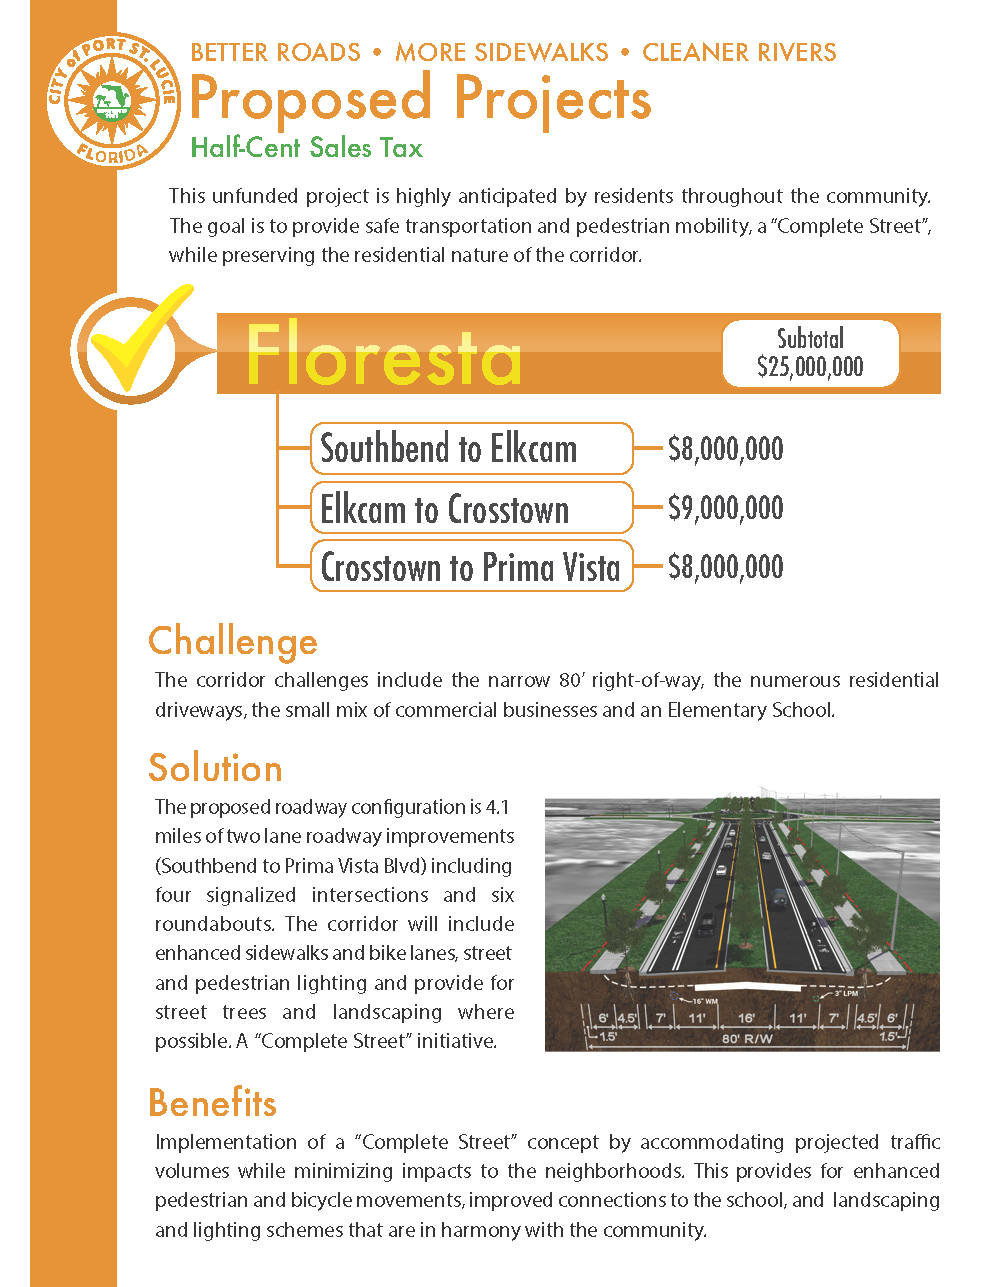 2018 Floresta Proposed Projects